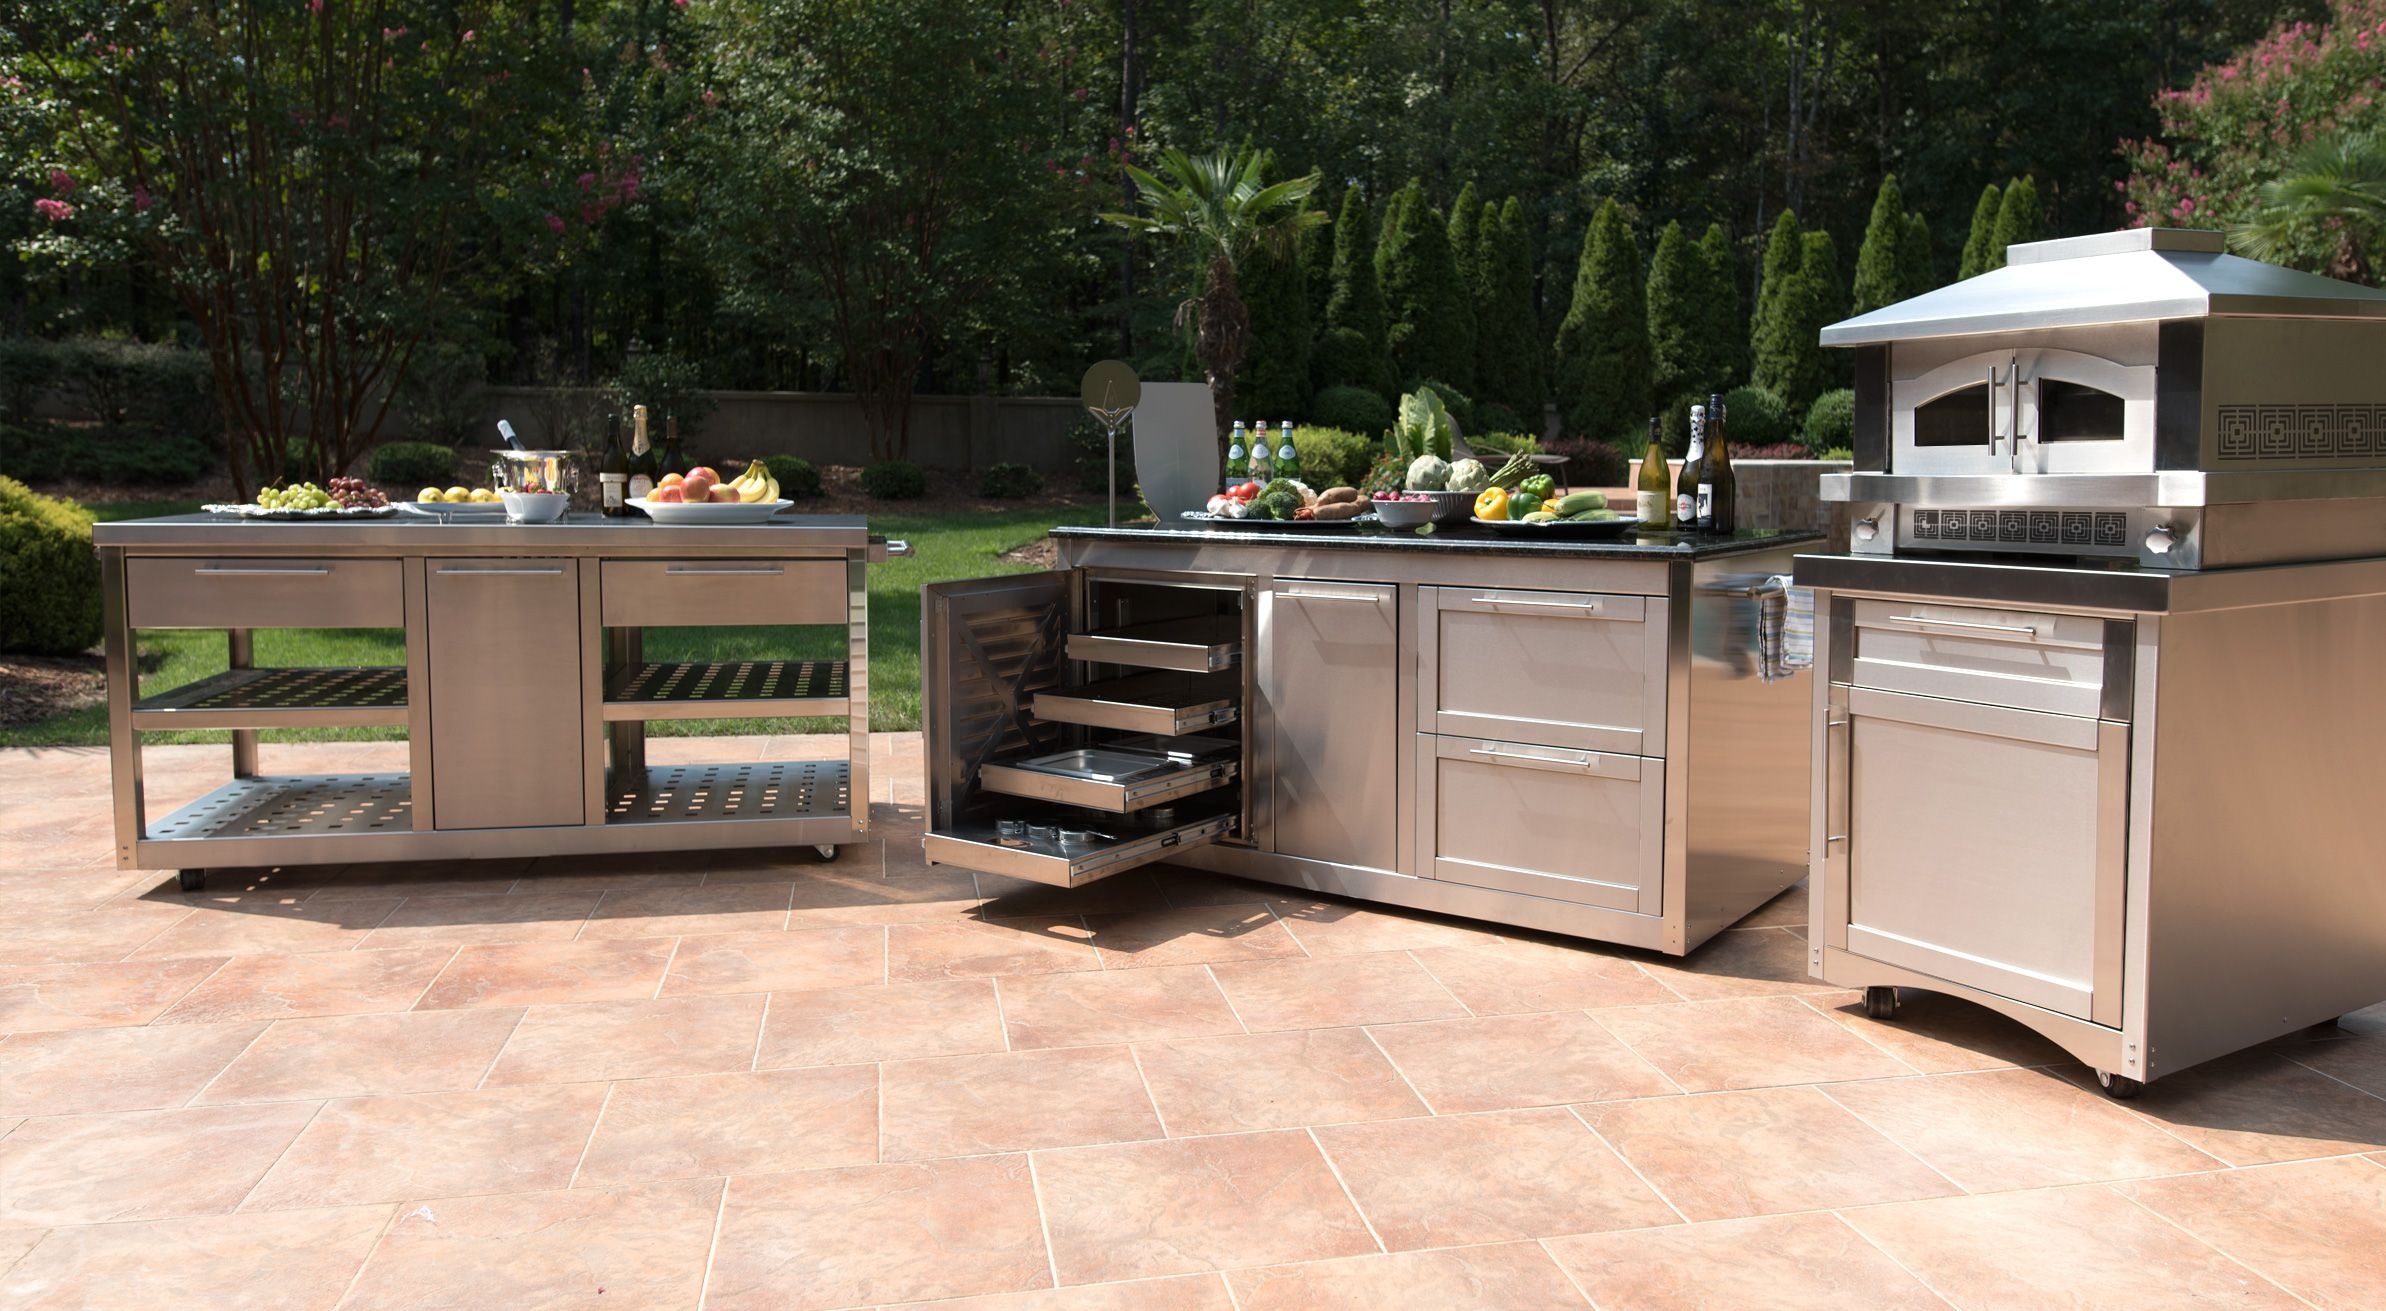 Sloan Outdoor Kitchens manufactures the Best Stainless Steel